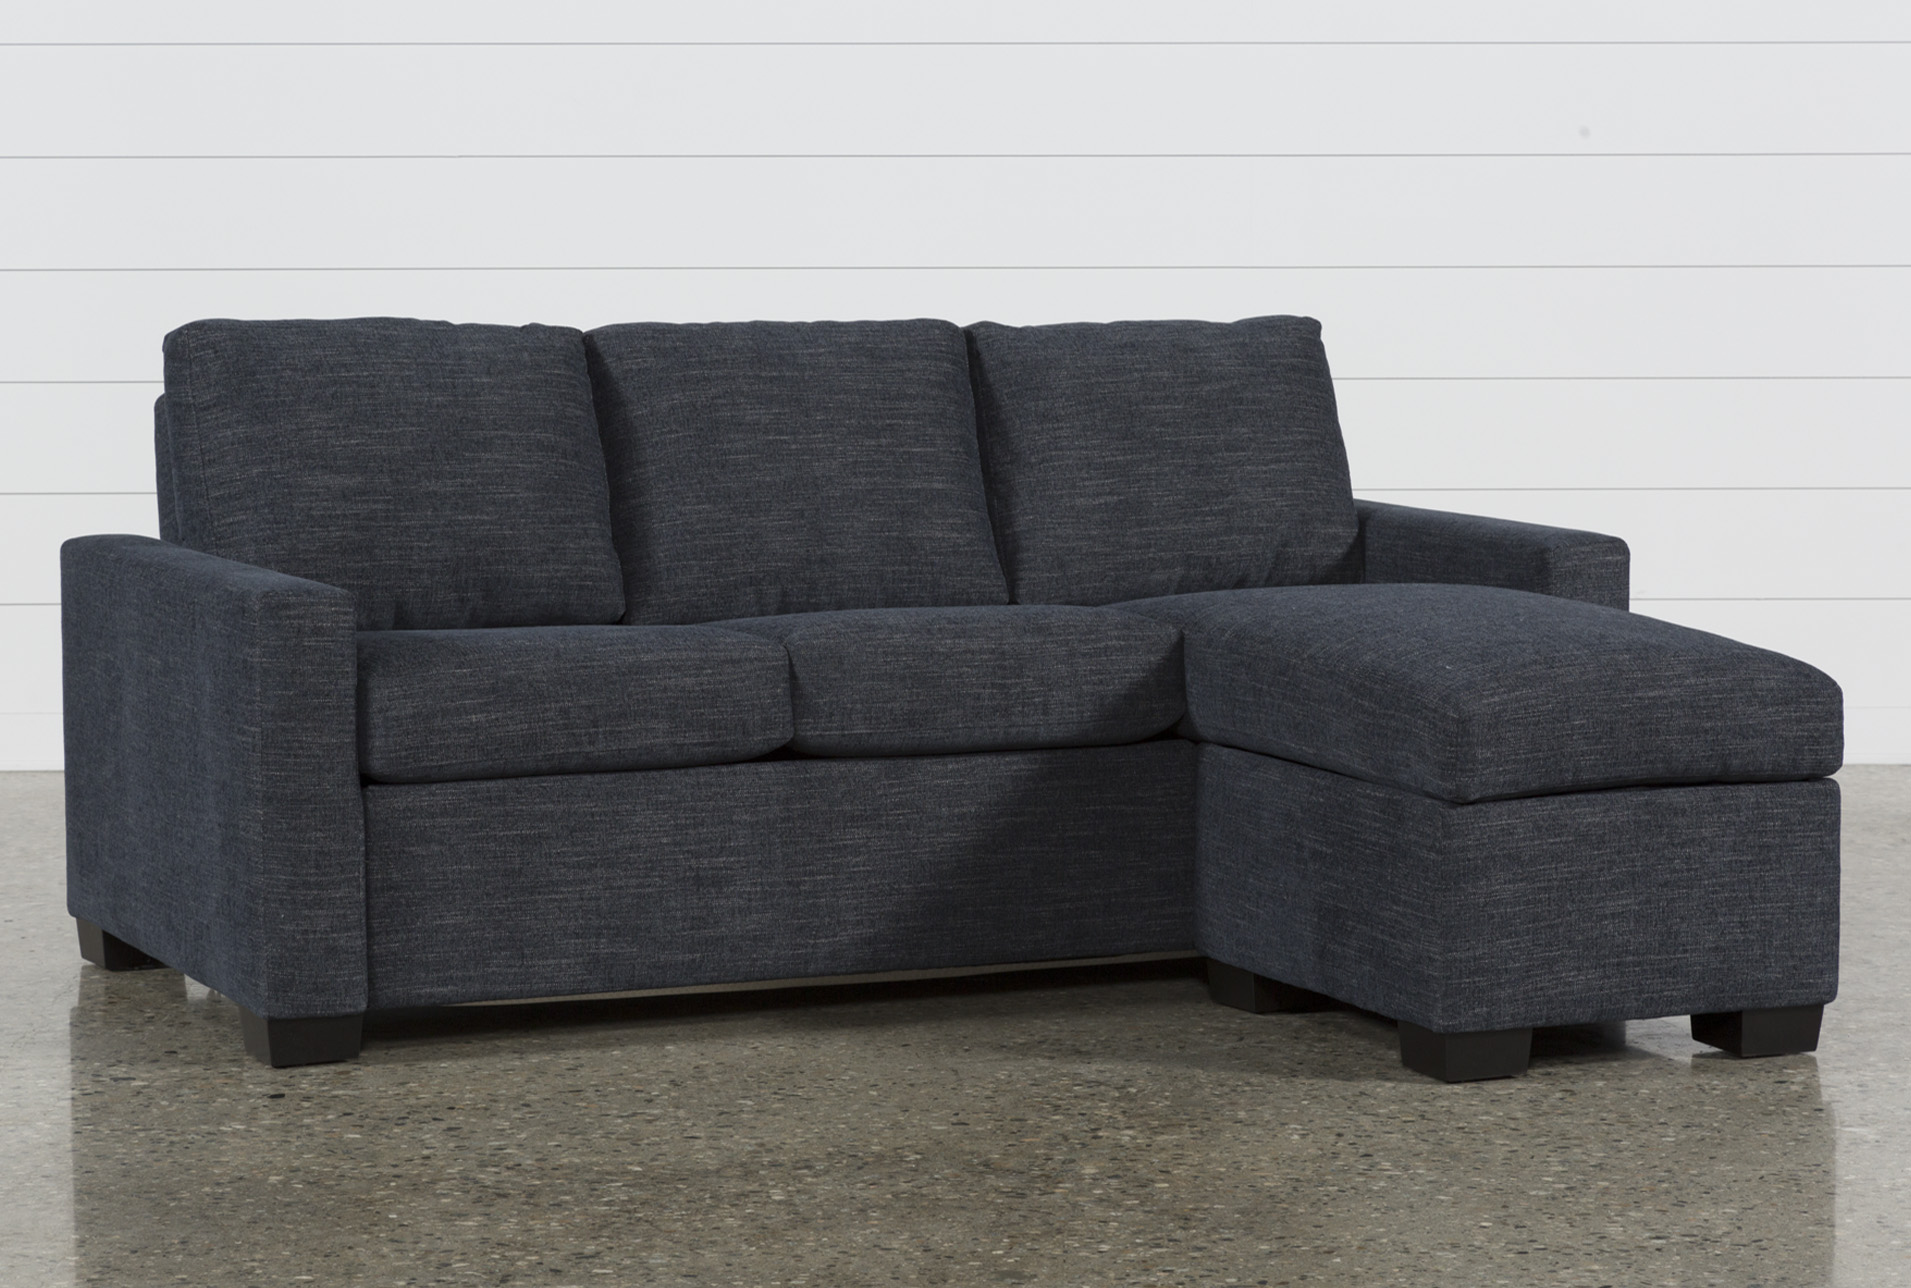 sofa beds free assembly with delivery living spaces rh livingspaces com Black and White Living Room Furniture Trinity Love Seat